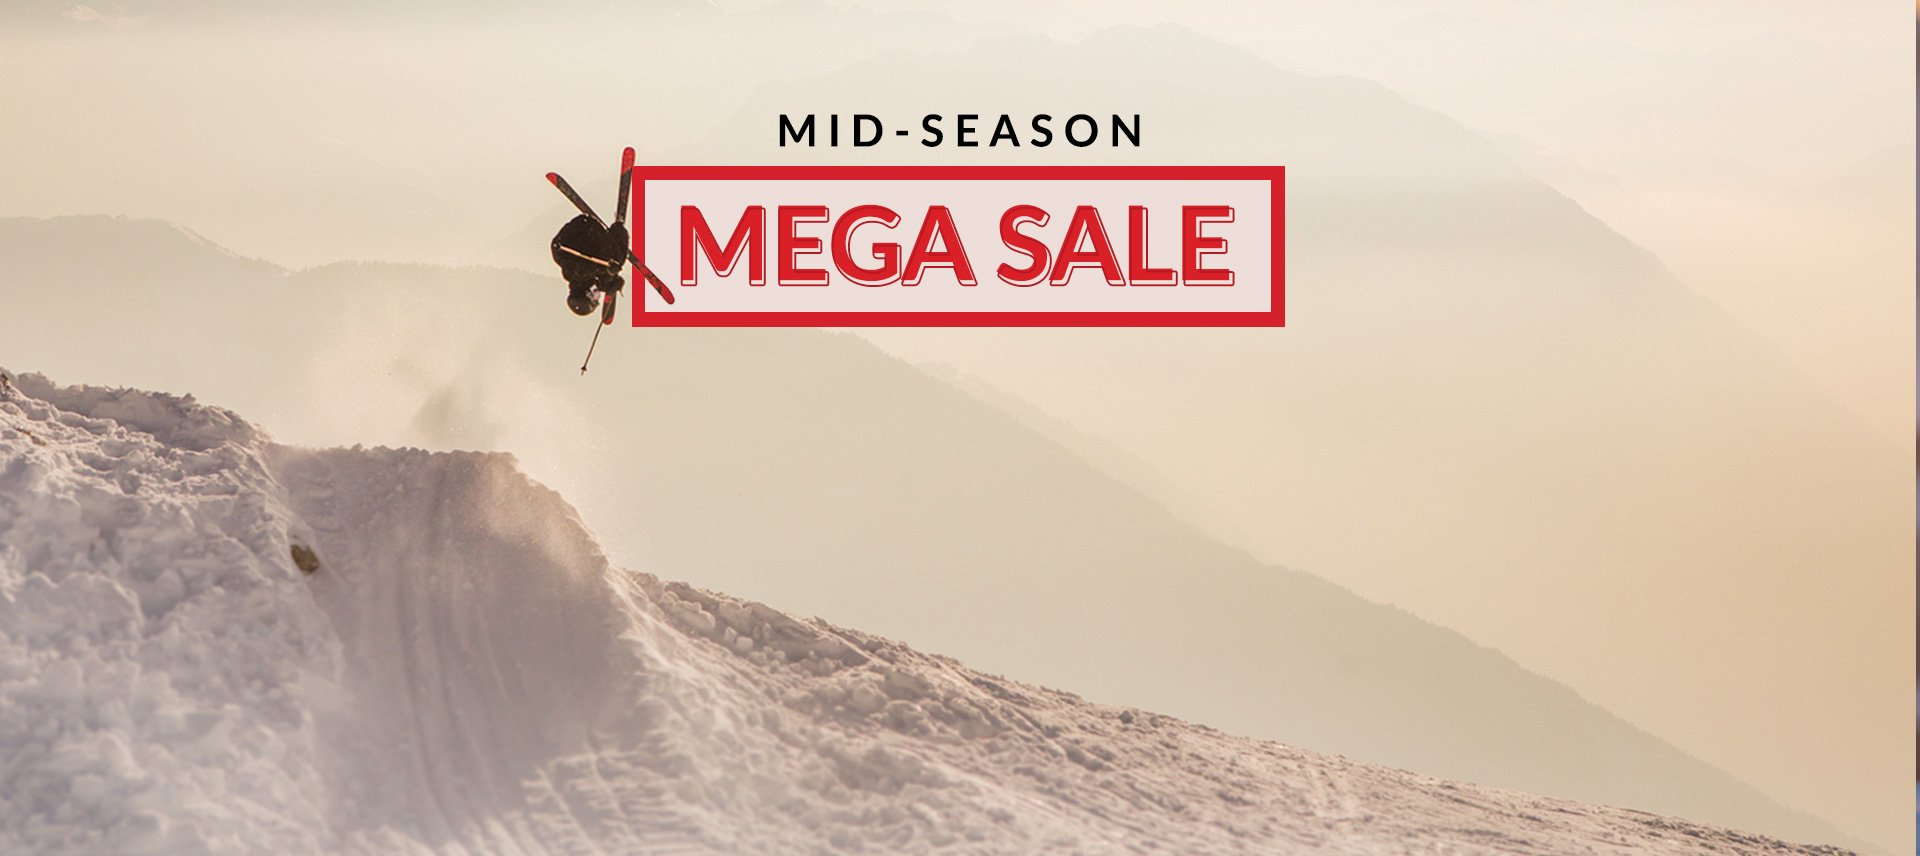 EXTRA 20% OFF SELECTED GEAR